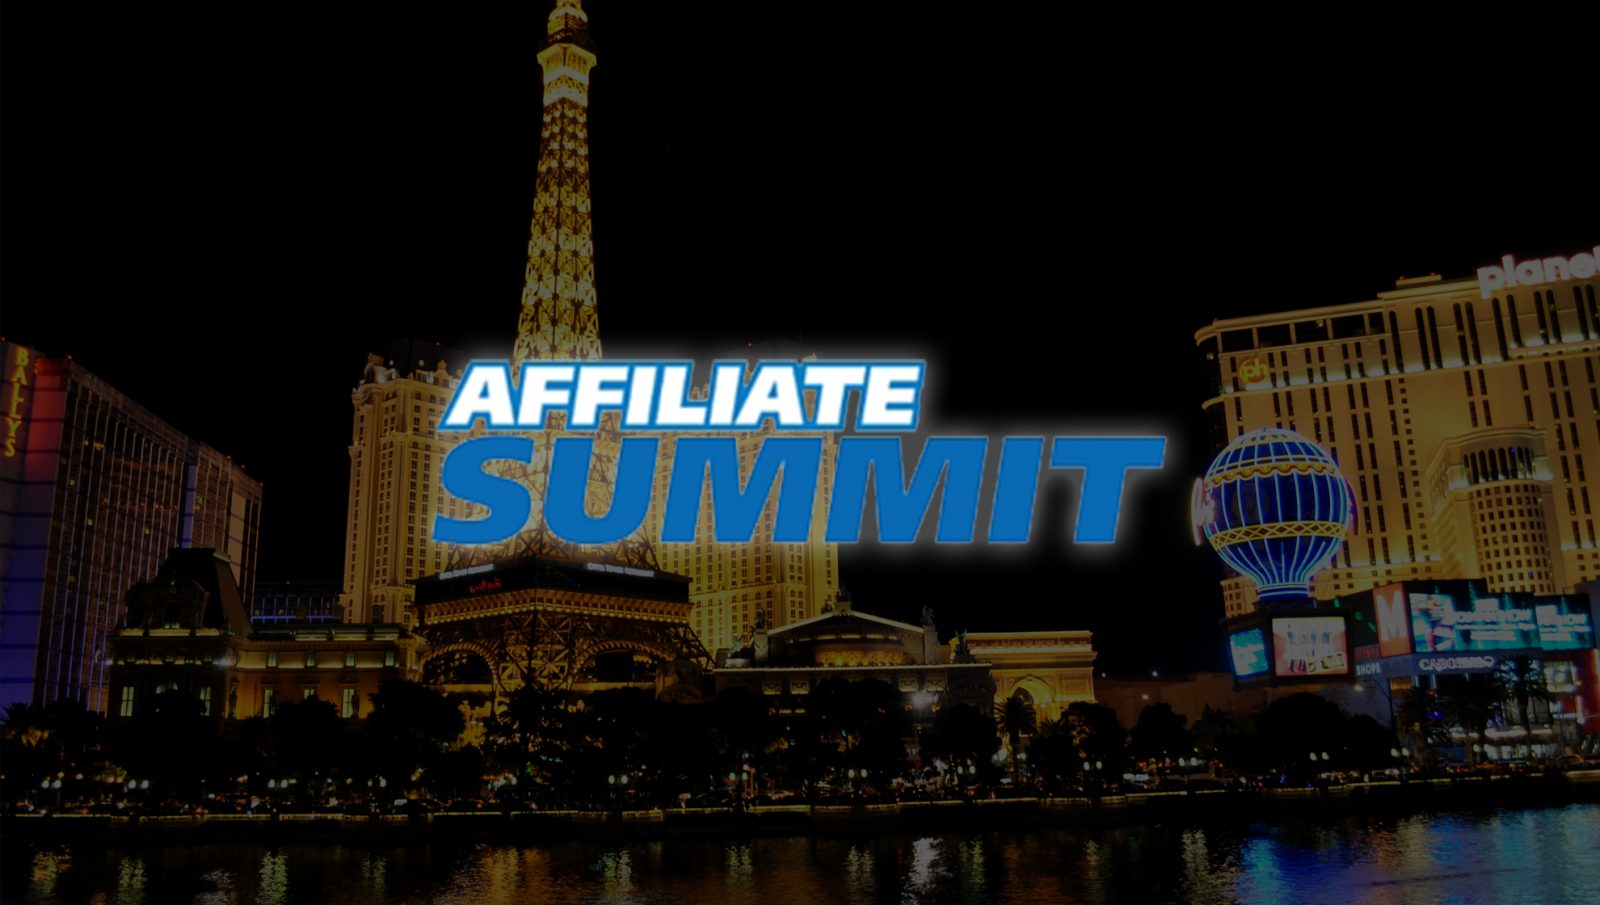 Affiliate Summit is taking over the City of Lights